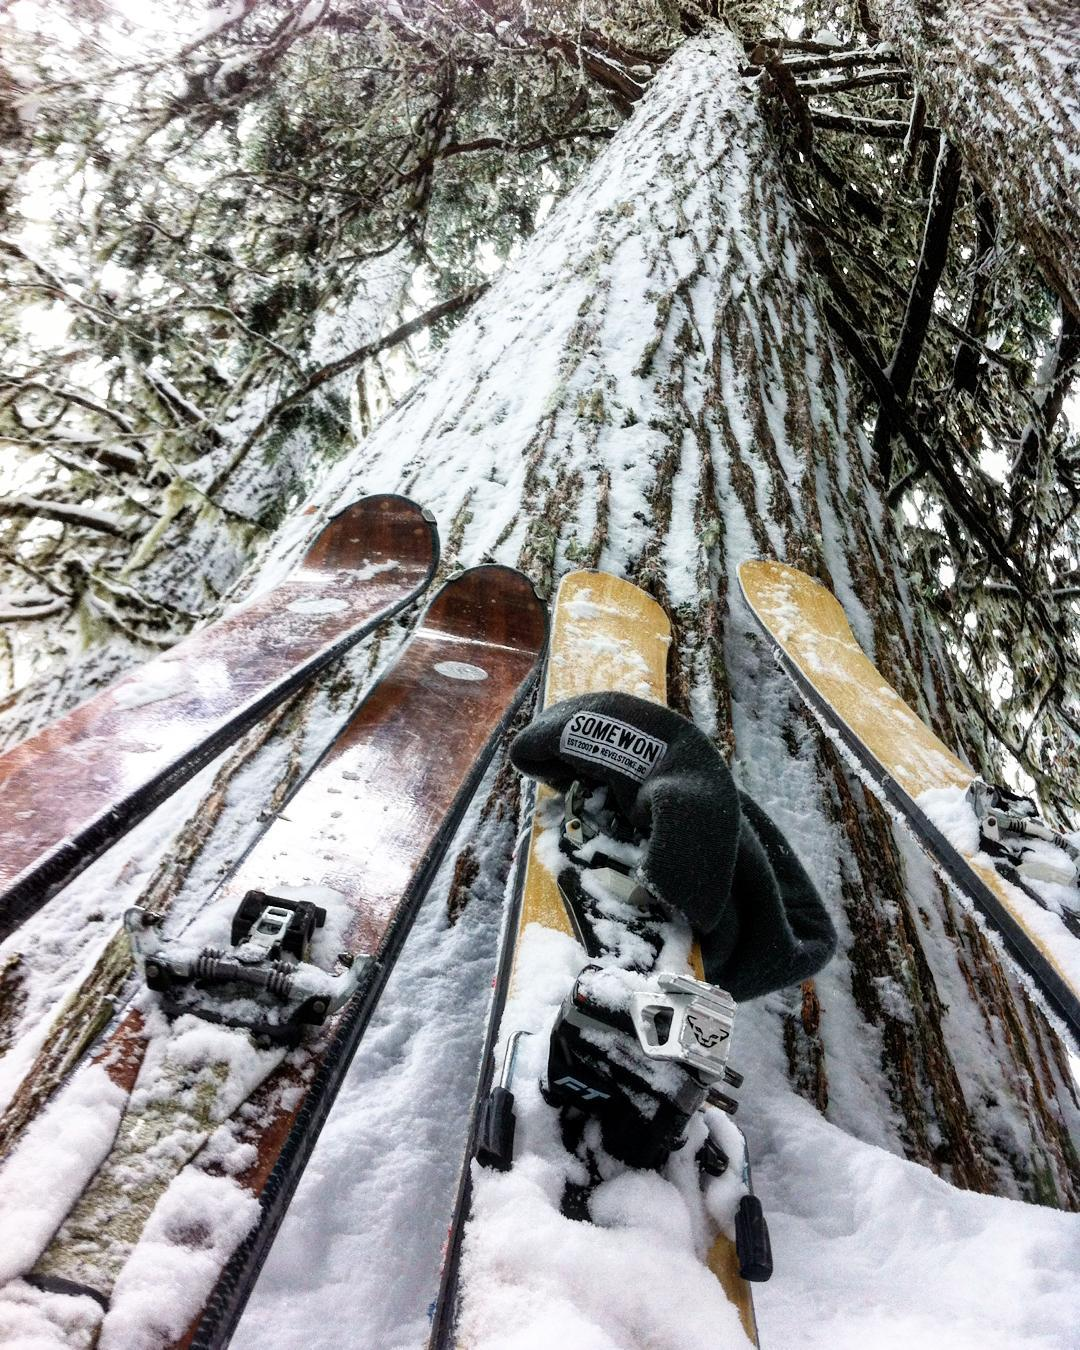 That's what we like to see. Wood skis and big trees. #revelstoke #wood #chasingsnowflakes #skiing #backcountry #skicanada #sopitted @skitrab_france #dynafit @somewon